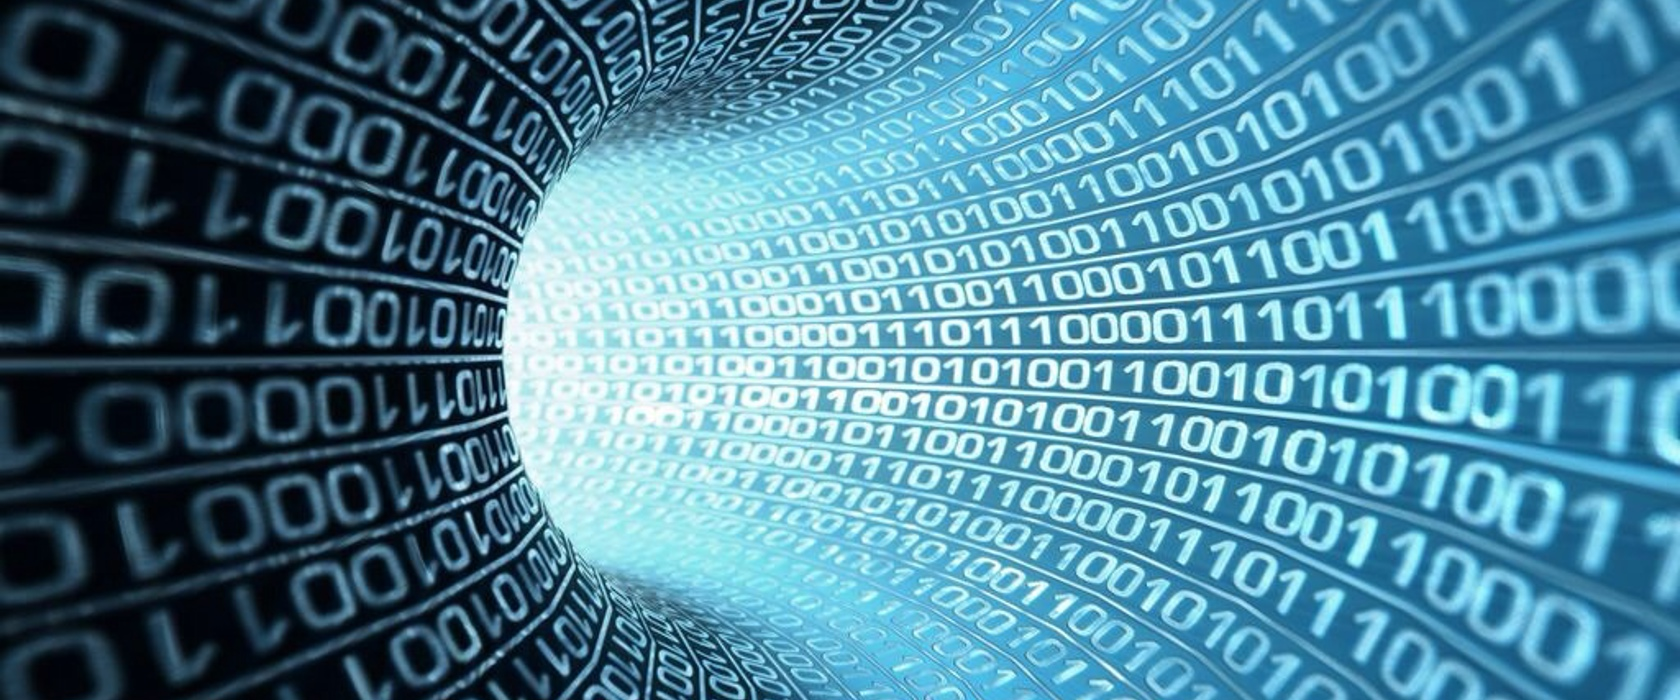 The data explosion and the commercial imperative